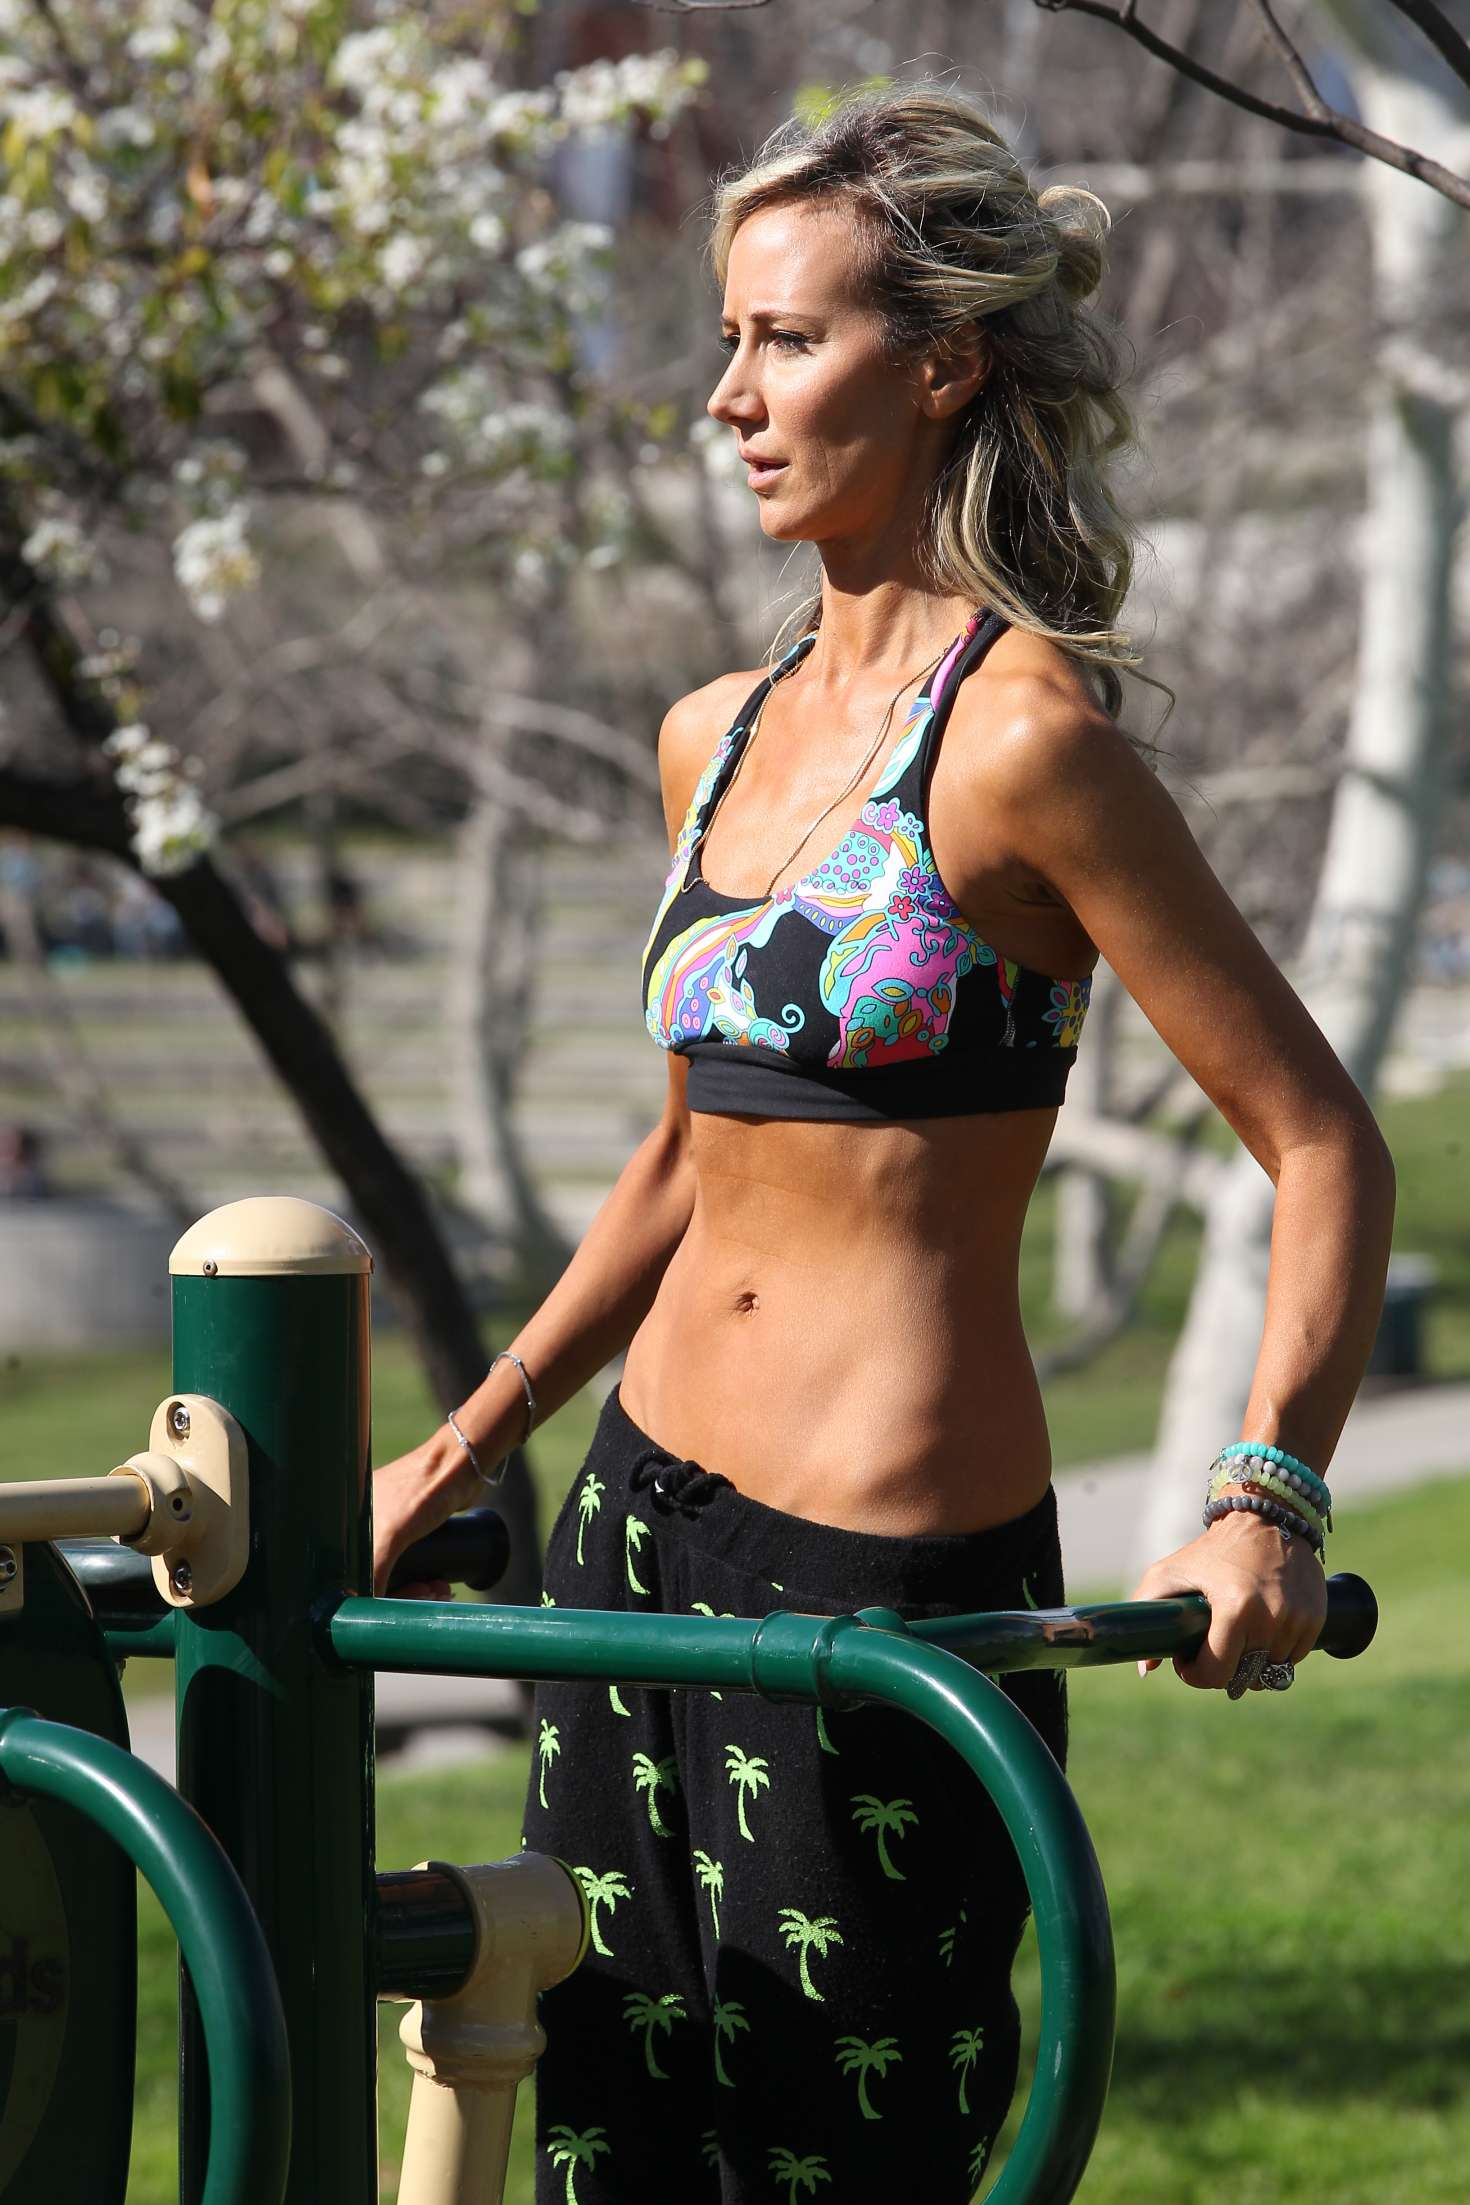 Lady Victoria Hervey working out at a park in West Hollywood